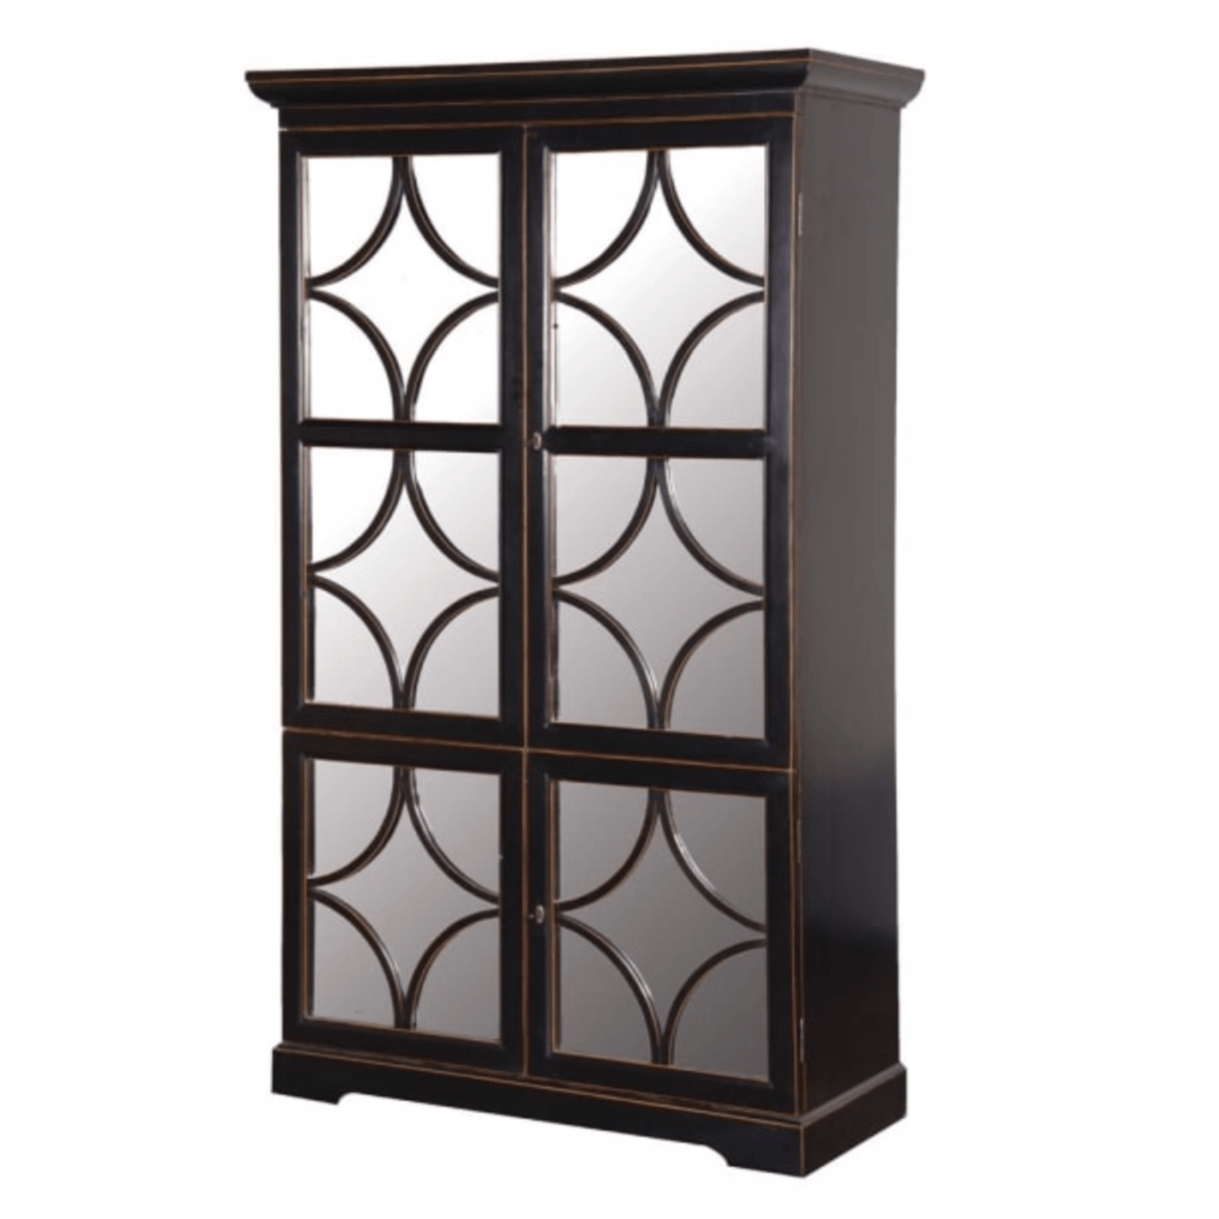 Kyoto Mirrored Cabinet - Barnbury